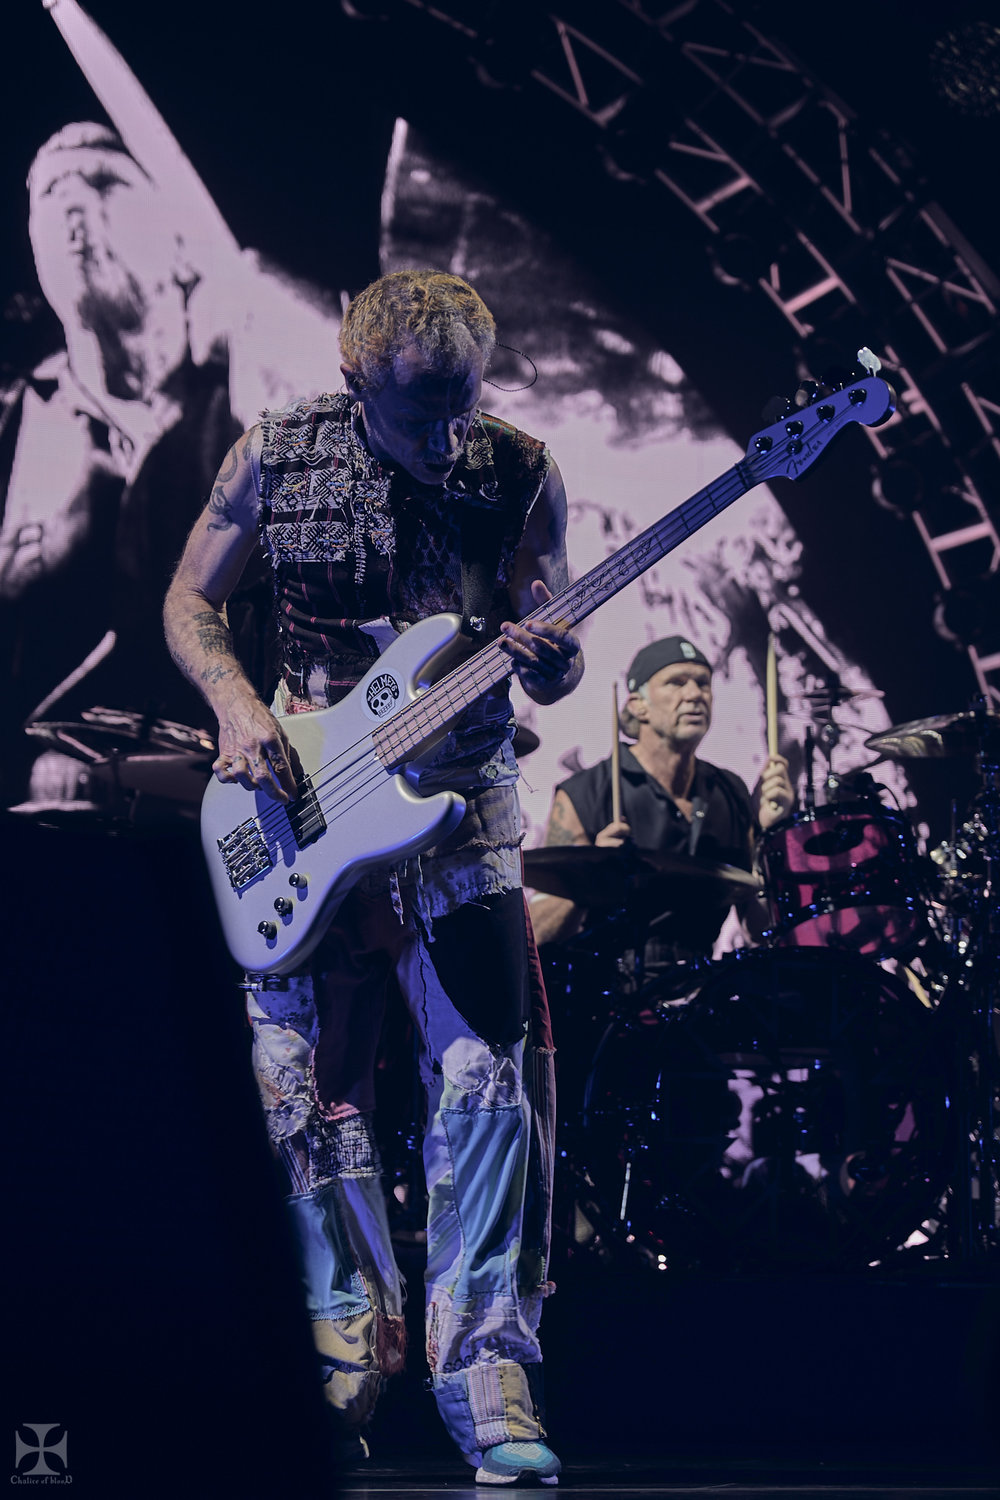 2019.03 RHCP - Red Hot Chilli Peppers 0240.jpg